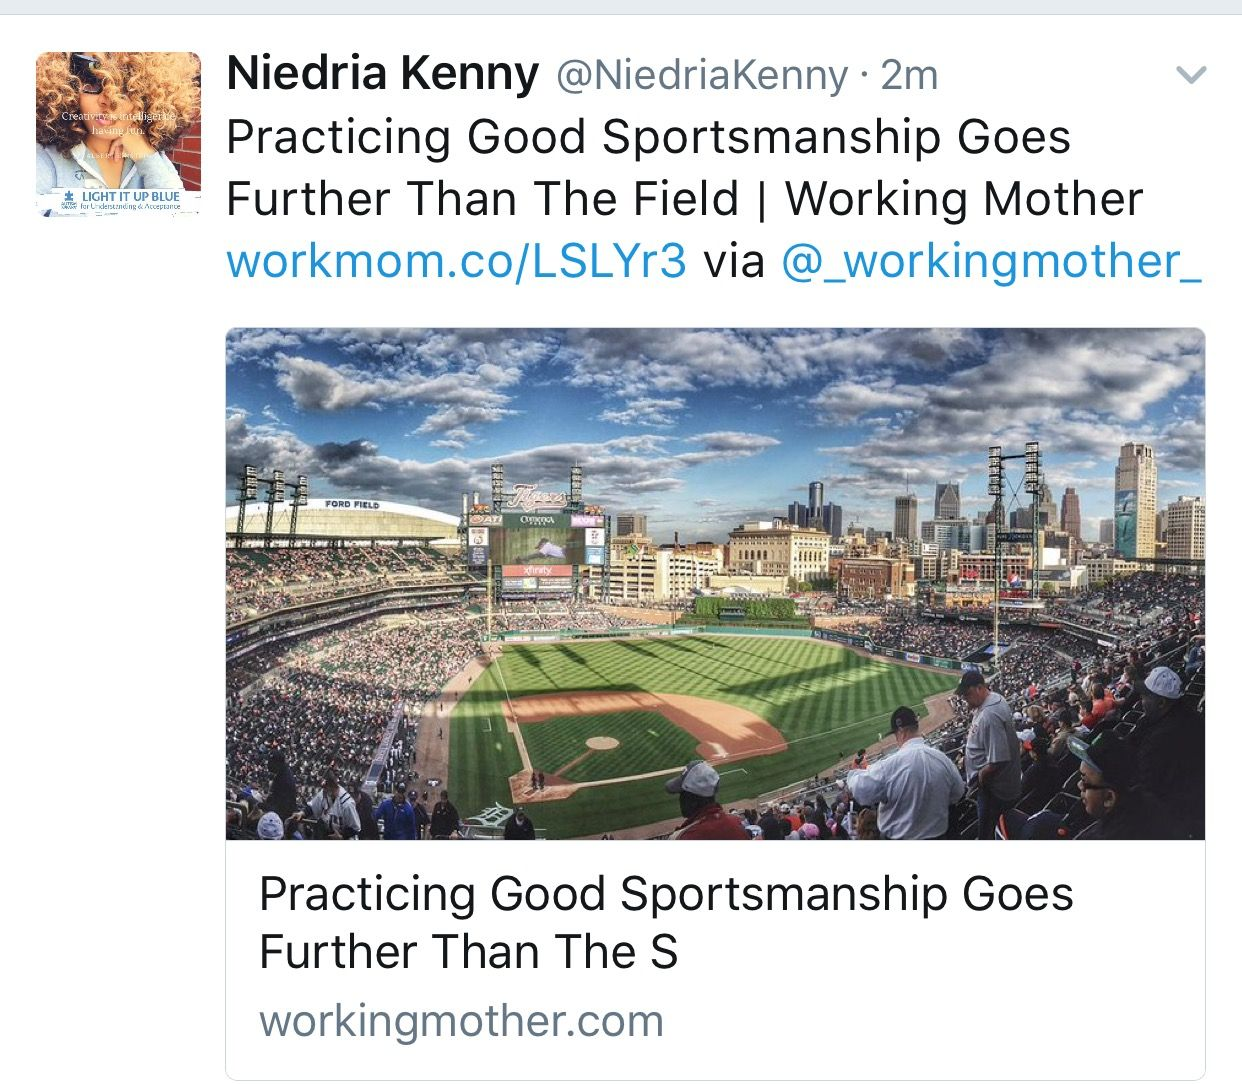 Practicing Good Sportsmanship Goes Further Than The Field | Working Mother workmom.co/LSLYr3 via @_workingmother_